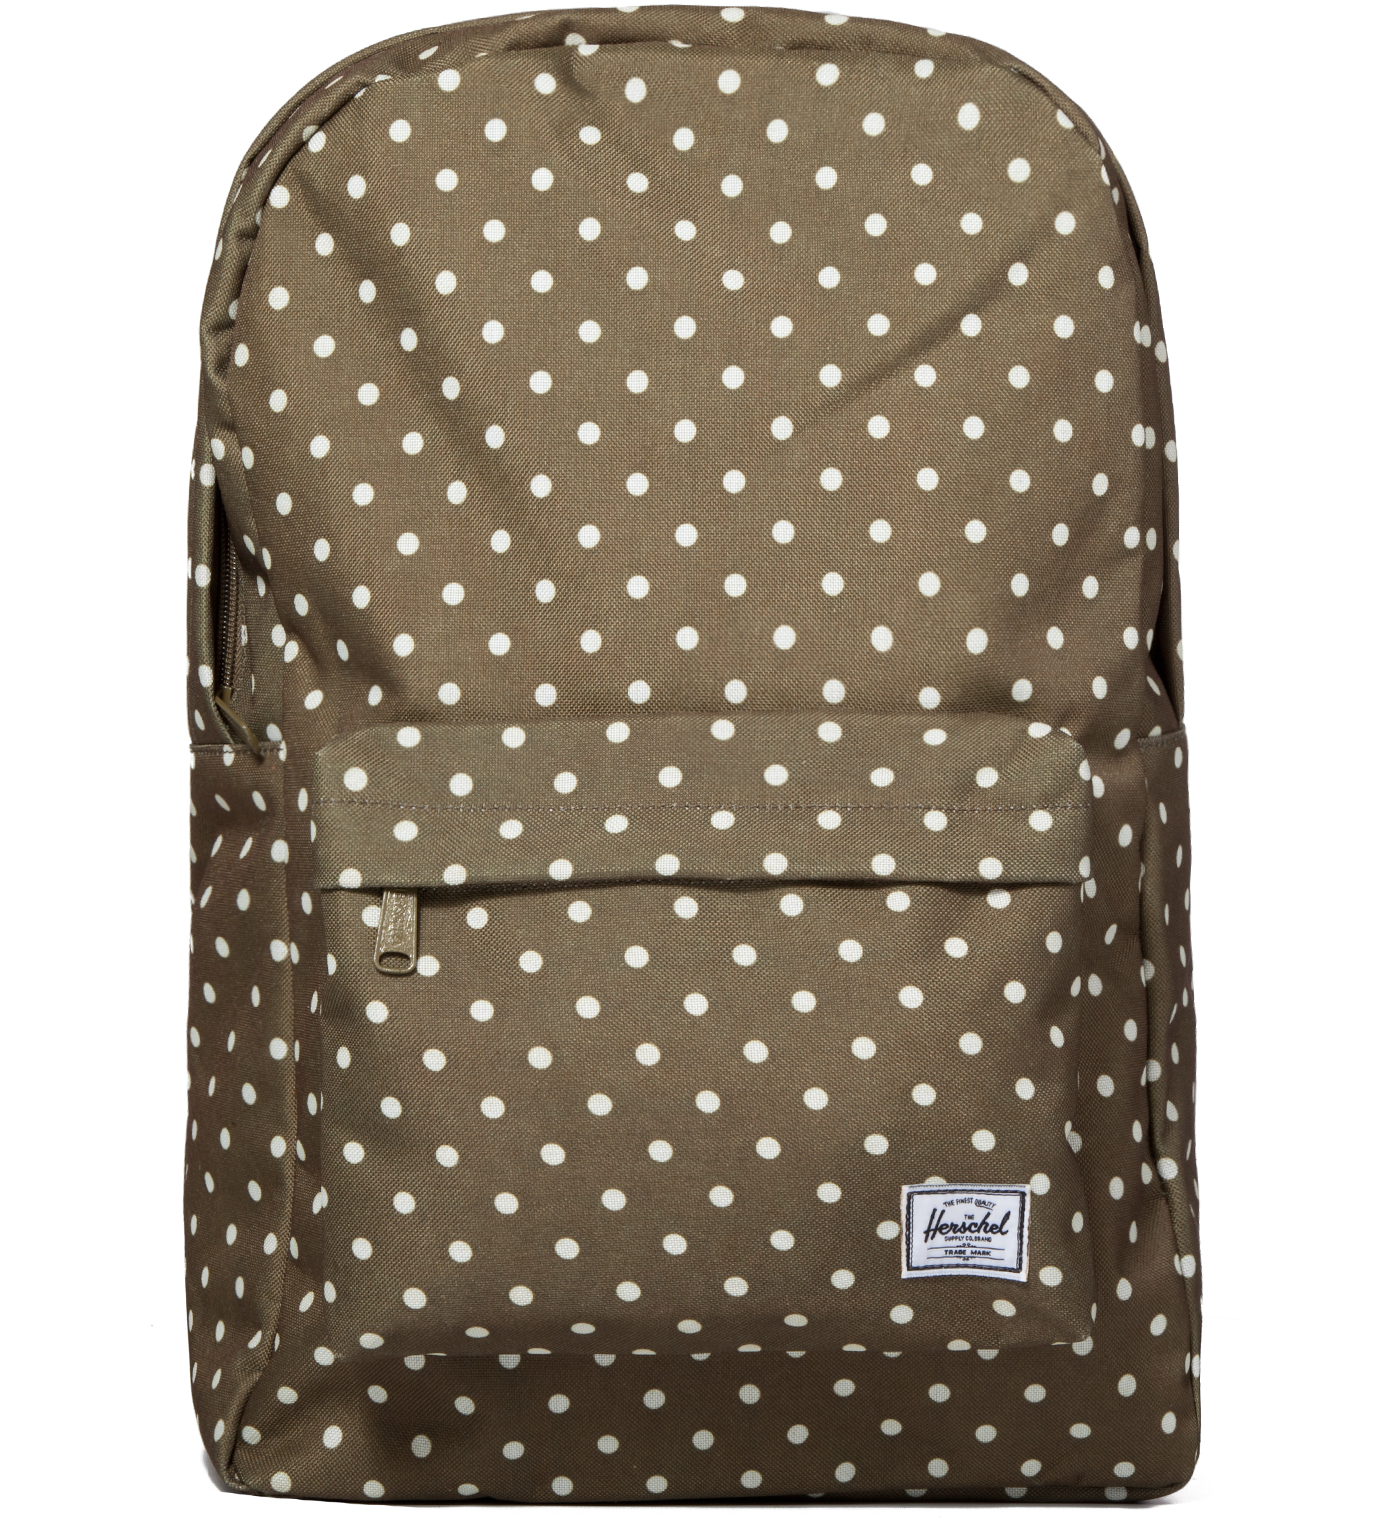 Herschel Supply Co. Olive Polka Dot Classic Backpack